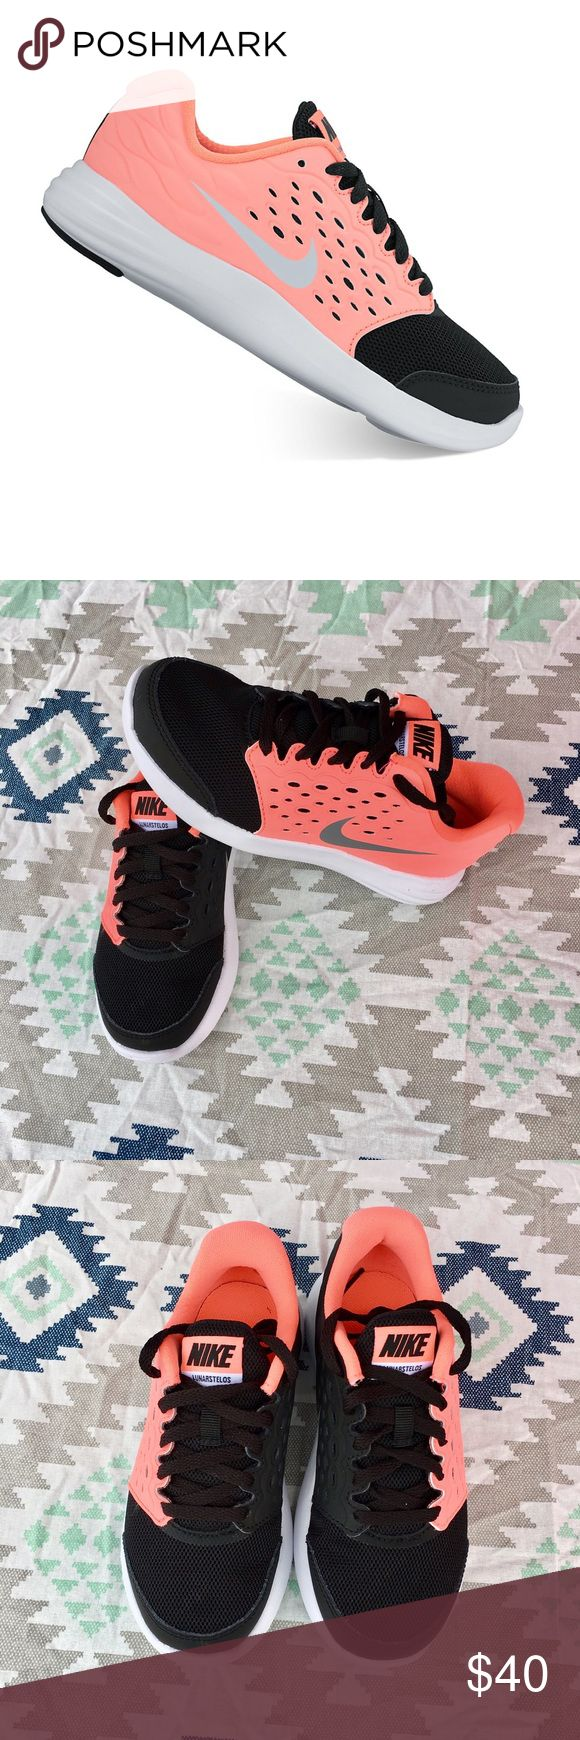 "Nike LunarStelos girls shoes! Nike LunarStelos girls shoes size girls 11 and 12, color black and pastel orange ""brand new"" Nike Shoes Sneakers"